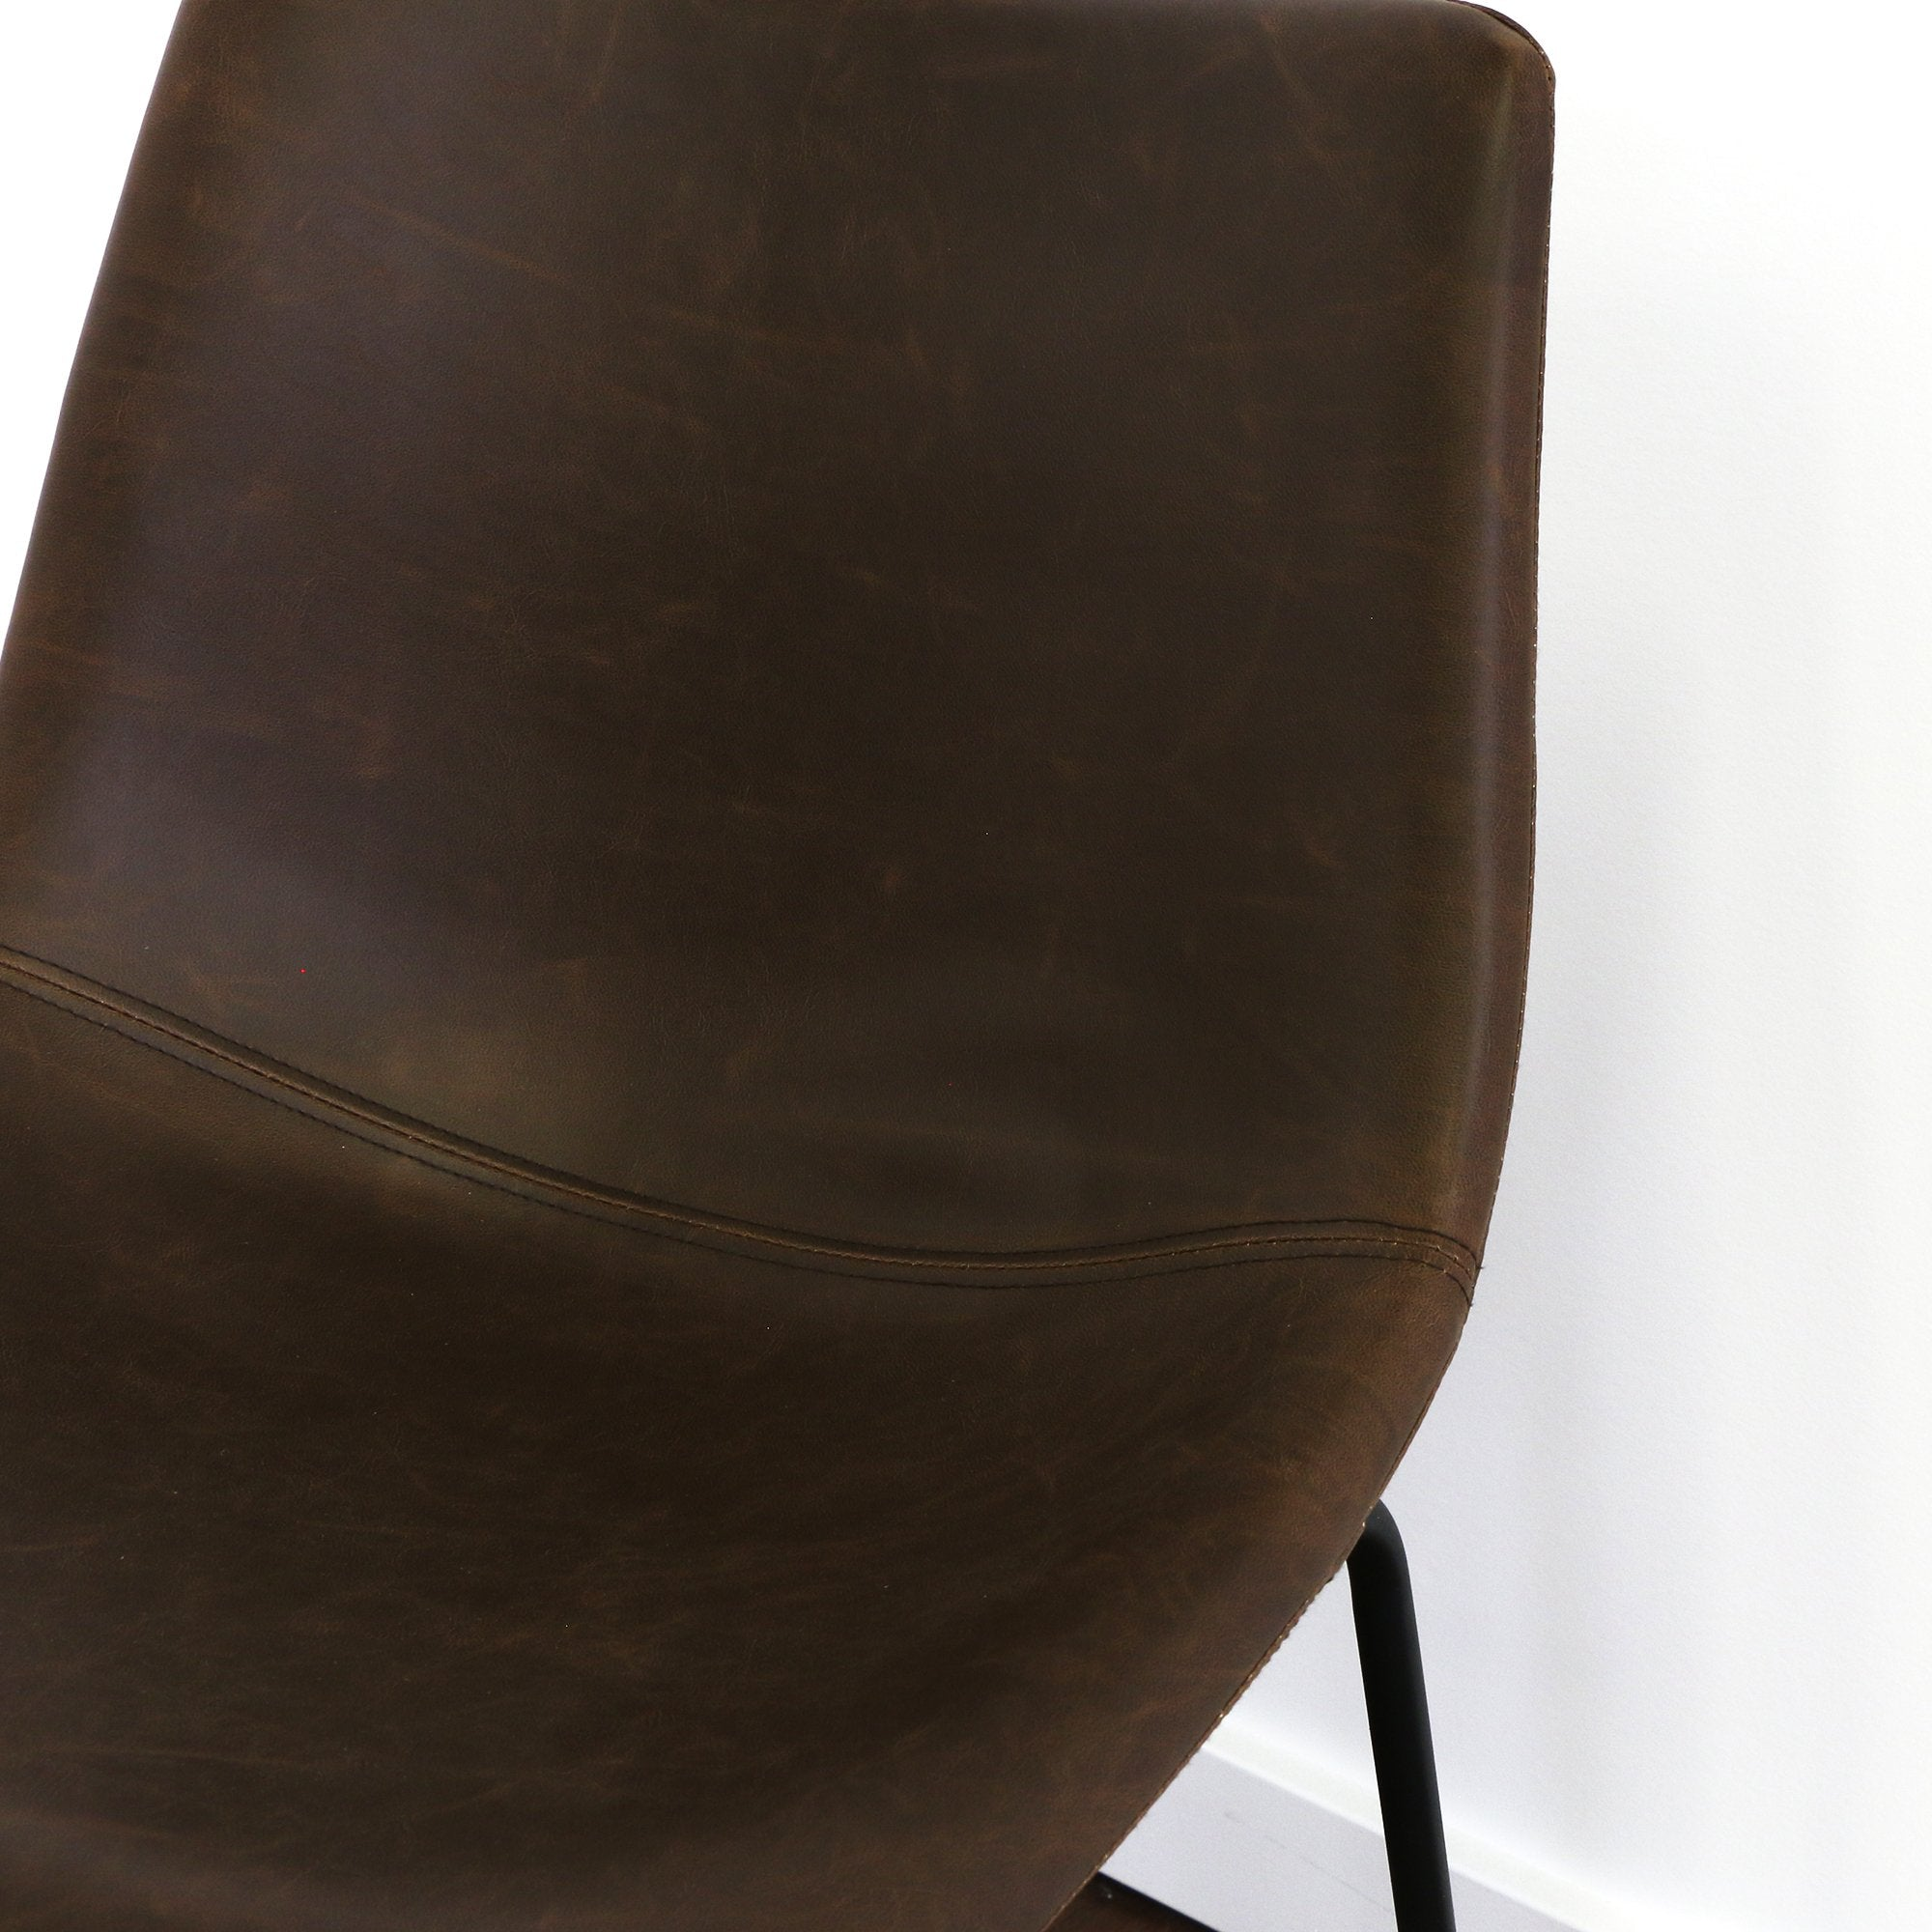 Faux Leather Dining Chair 18""